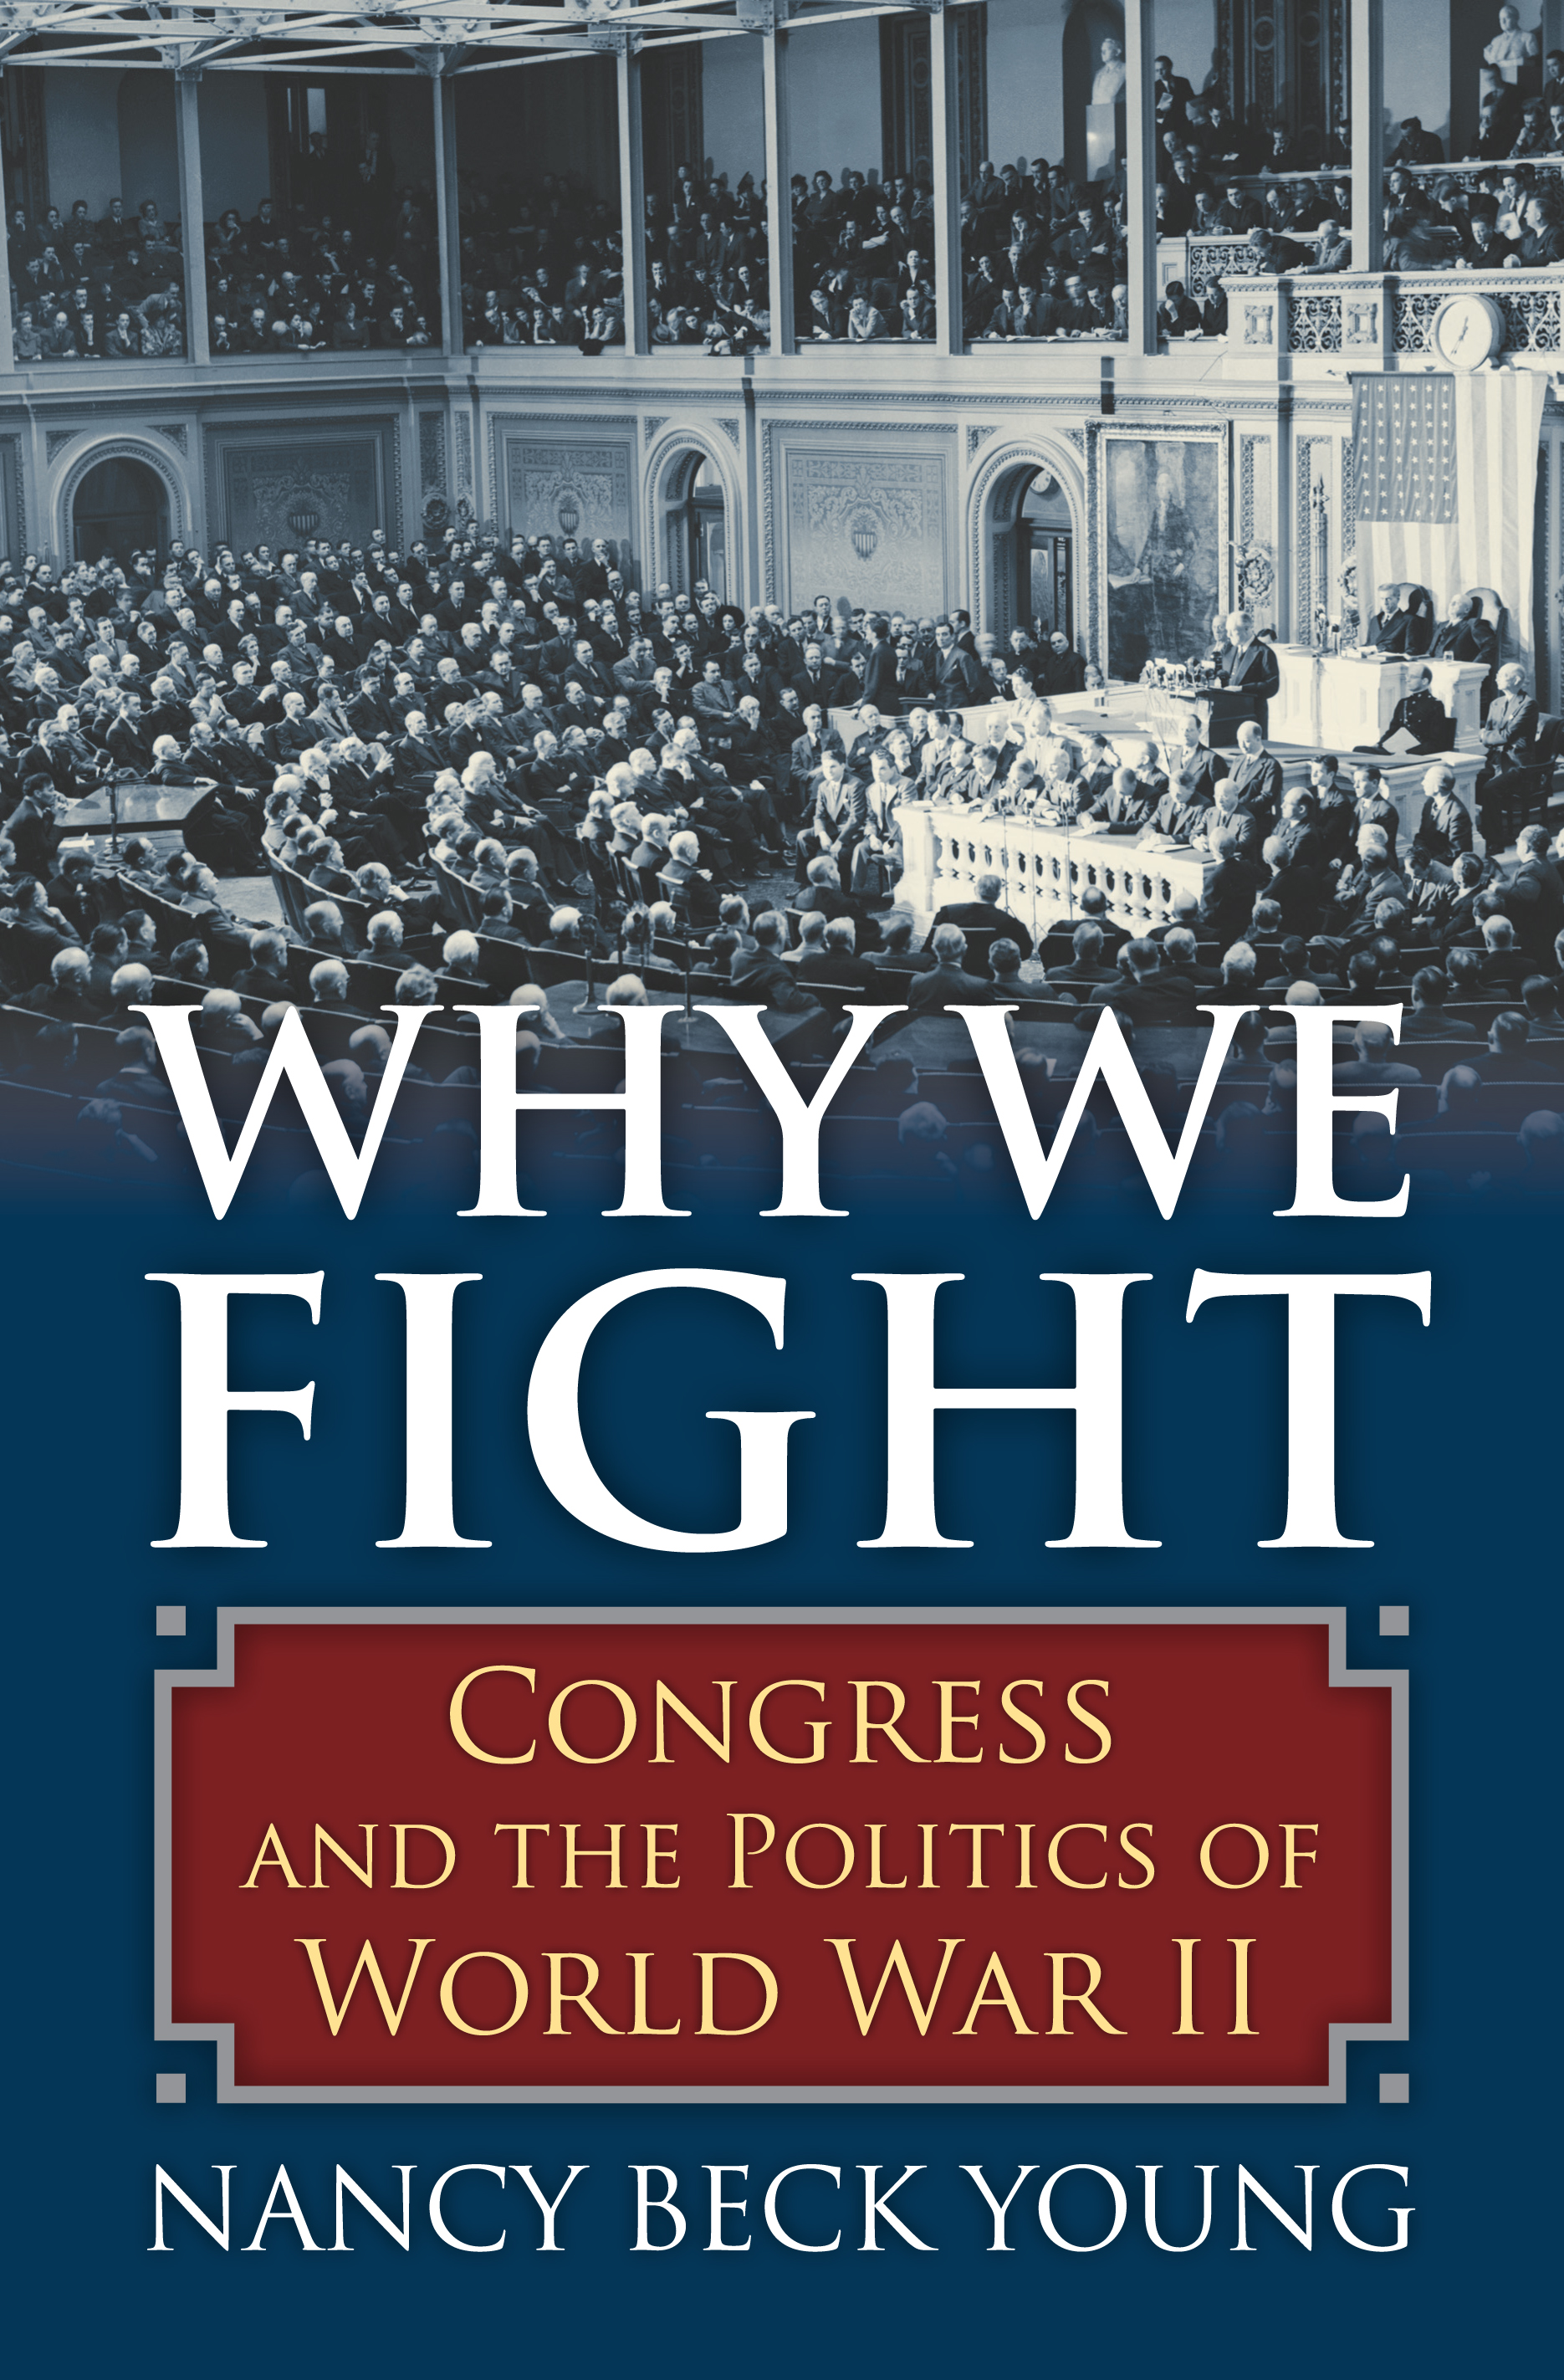 Book Cover of Why We Fight